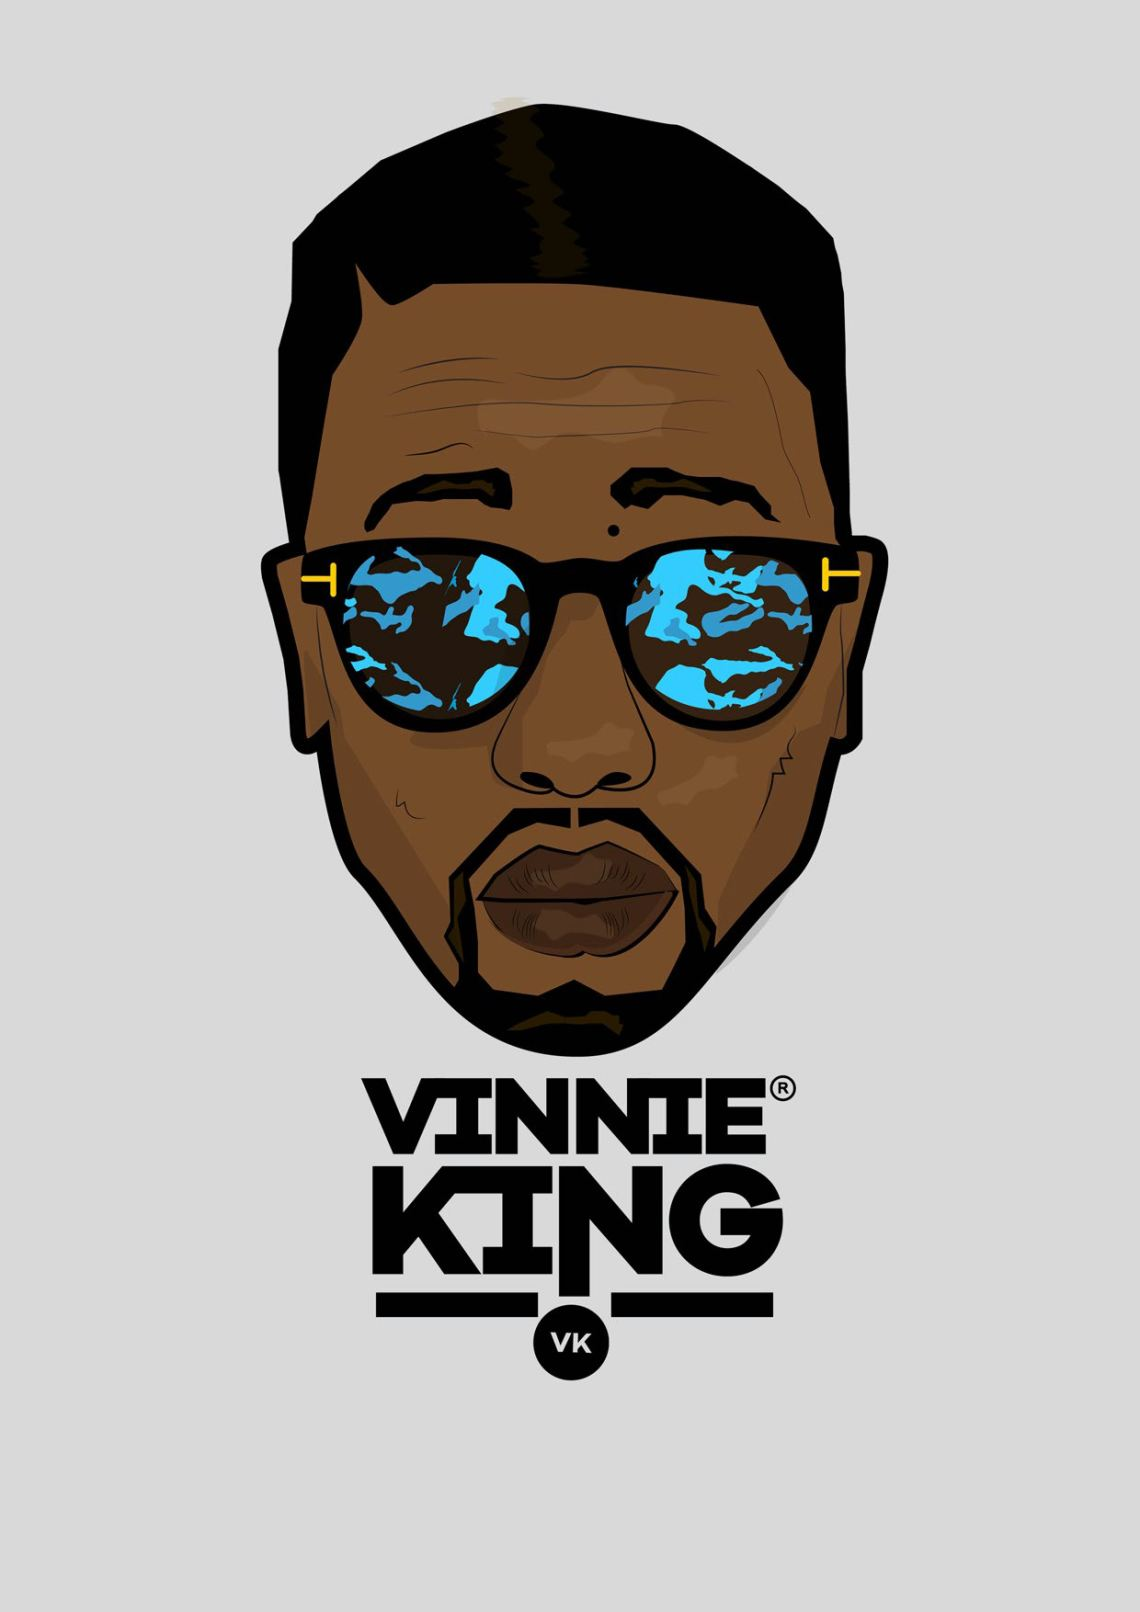 Vinnie King CV